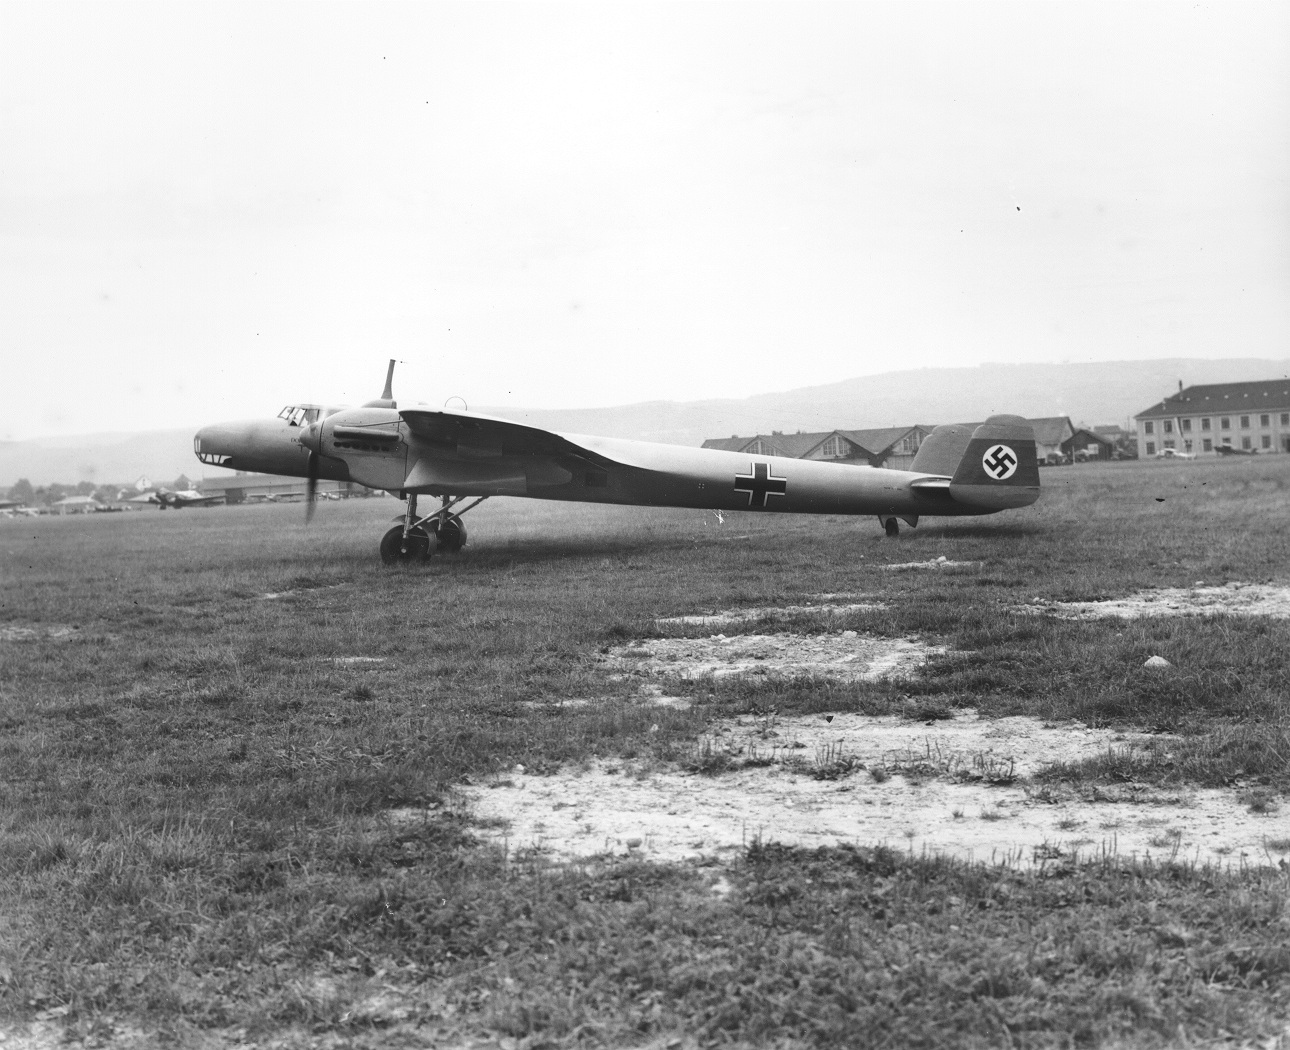 """Side view of a Dornier 17 illustrates why it earned the """"Flying Pencil"""" appellation.  (Image Credit: Trustees of the Royal Air Force Museum)"""